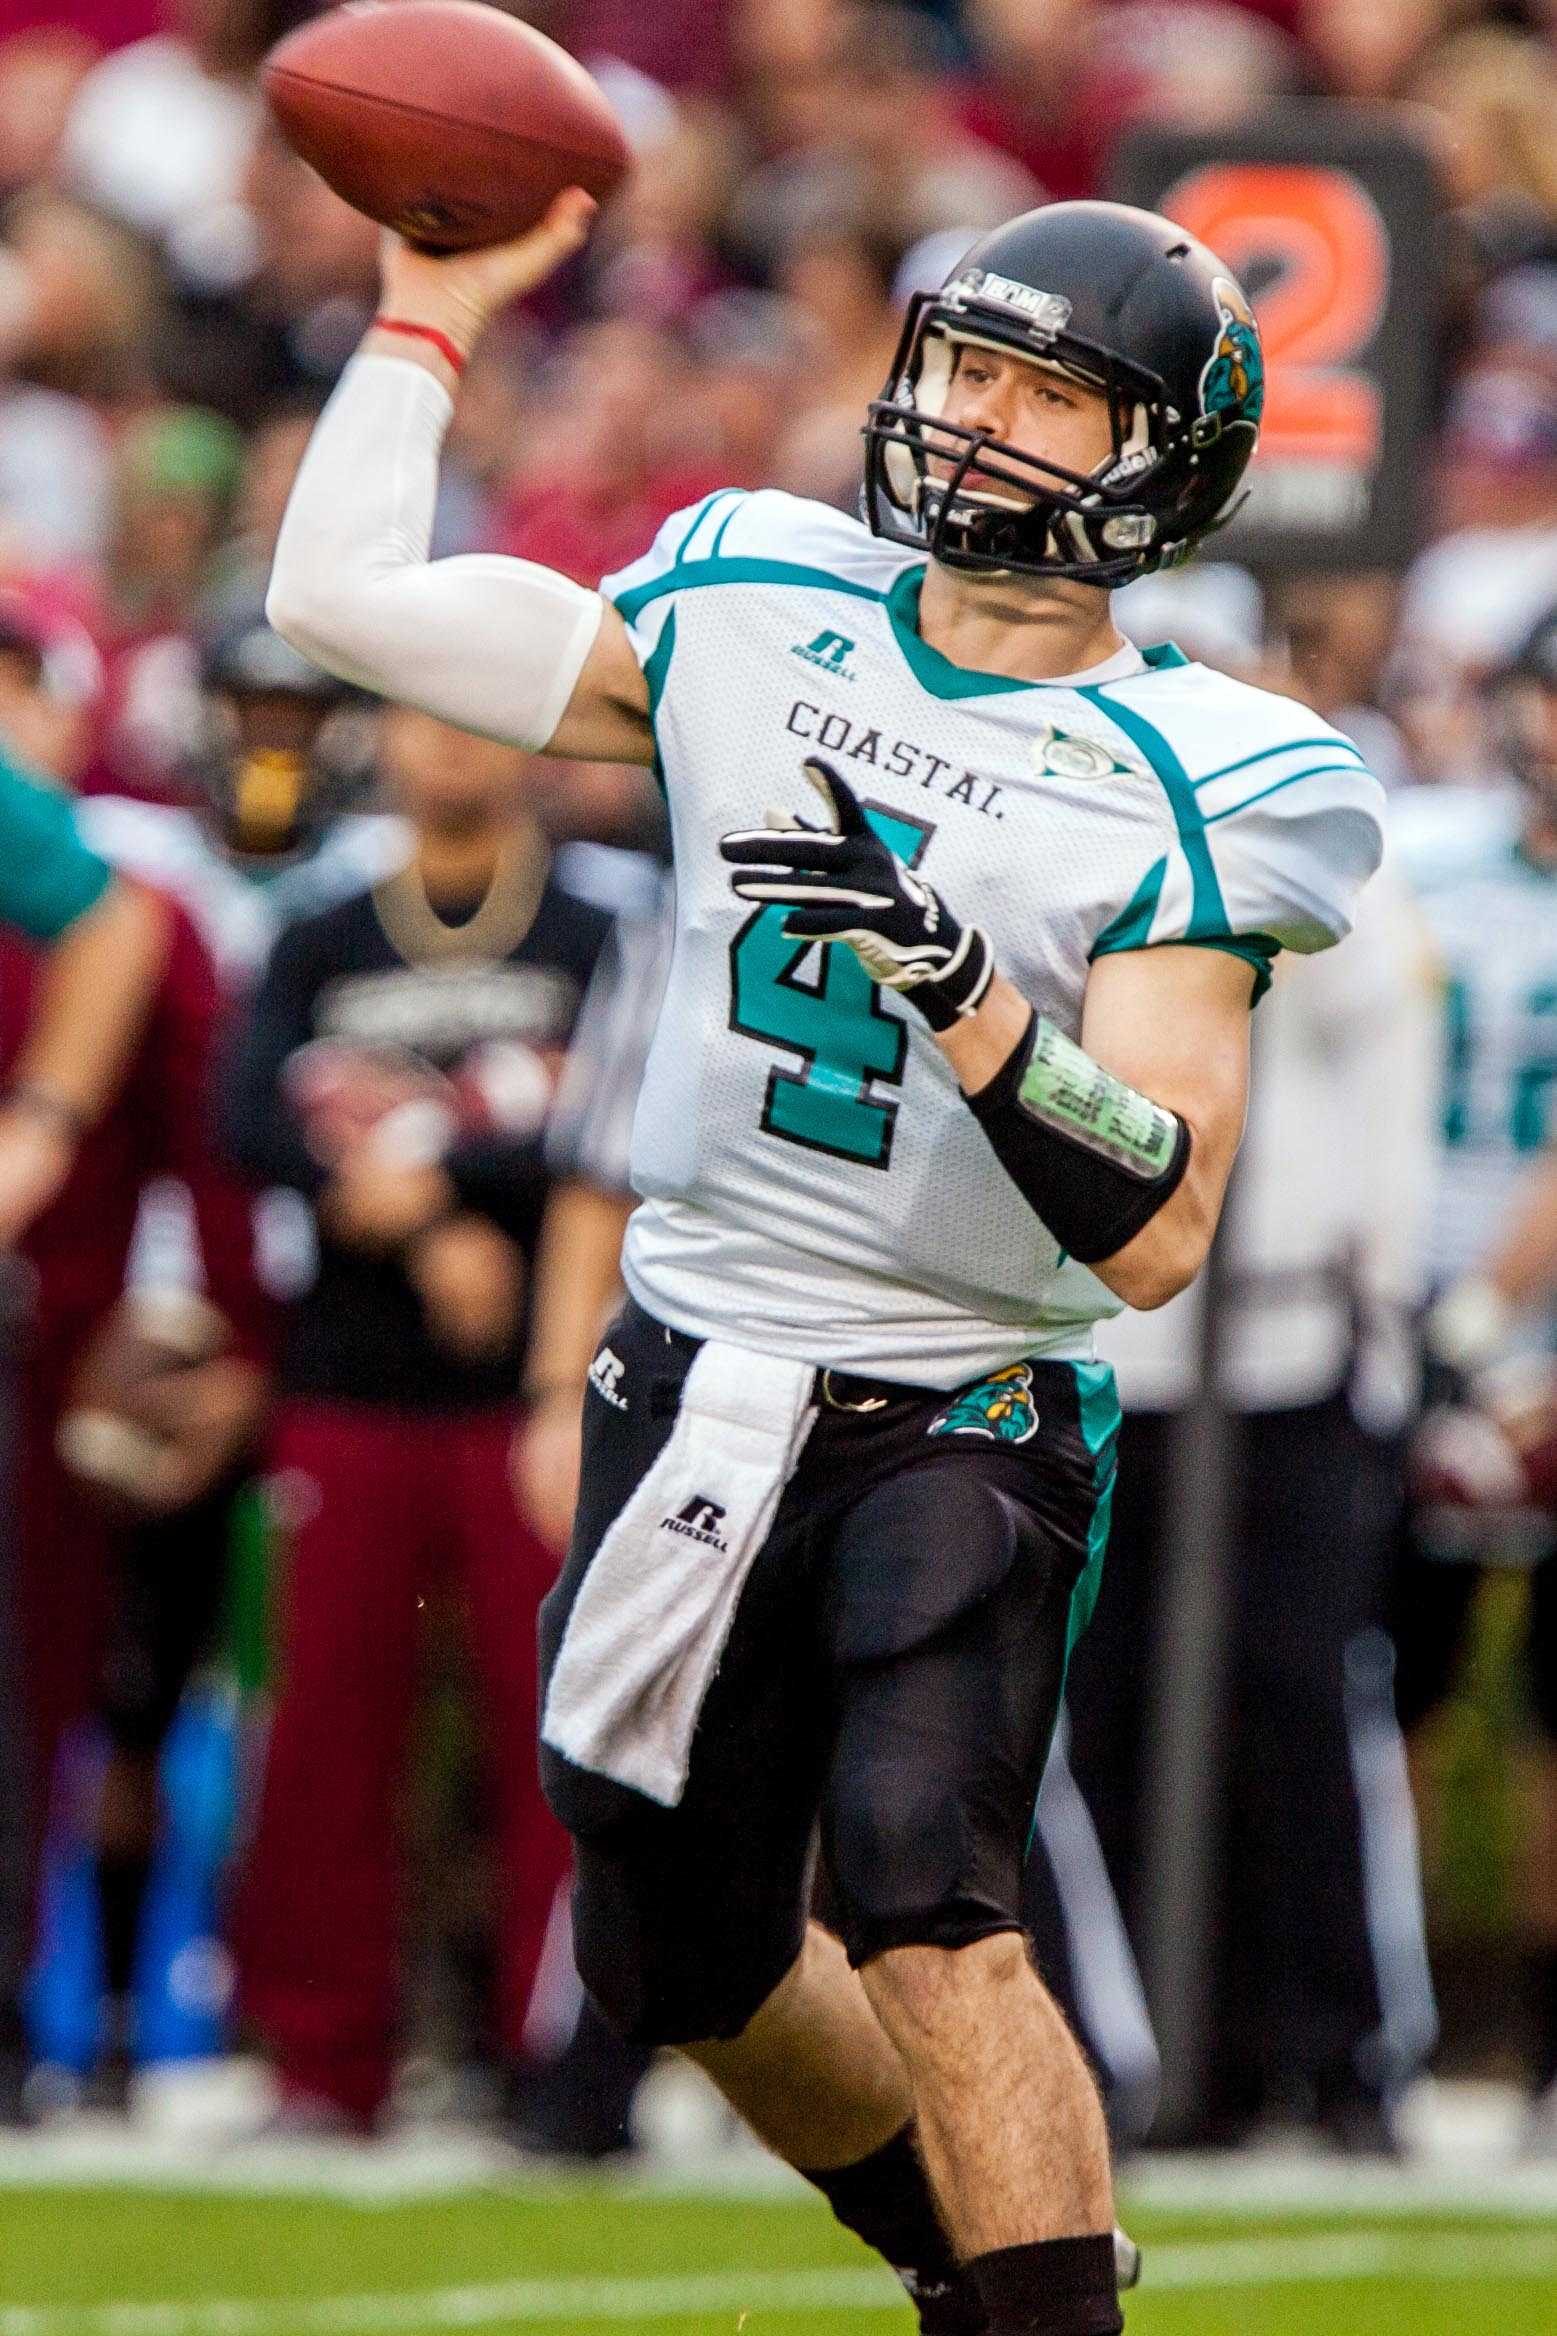 Competitively, they're a good match. But can Coastal Carolina make it work?